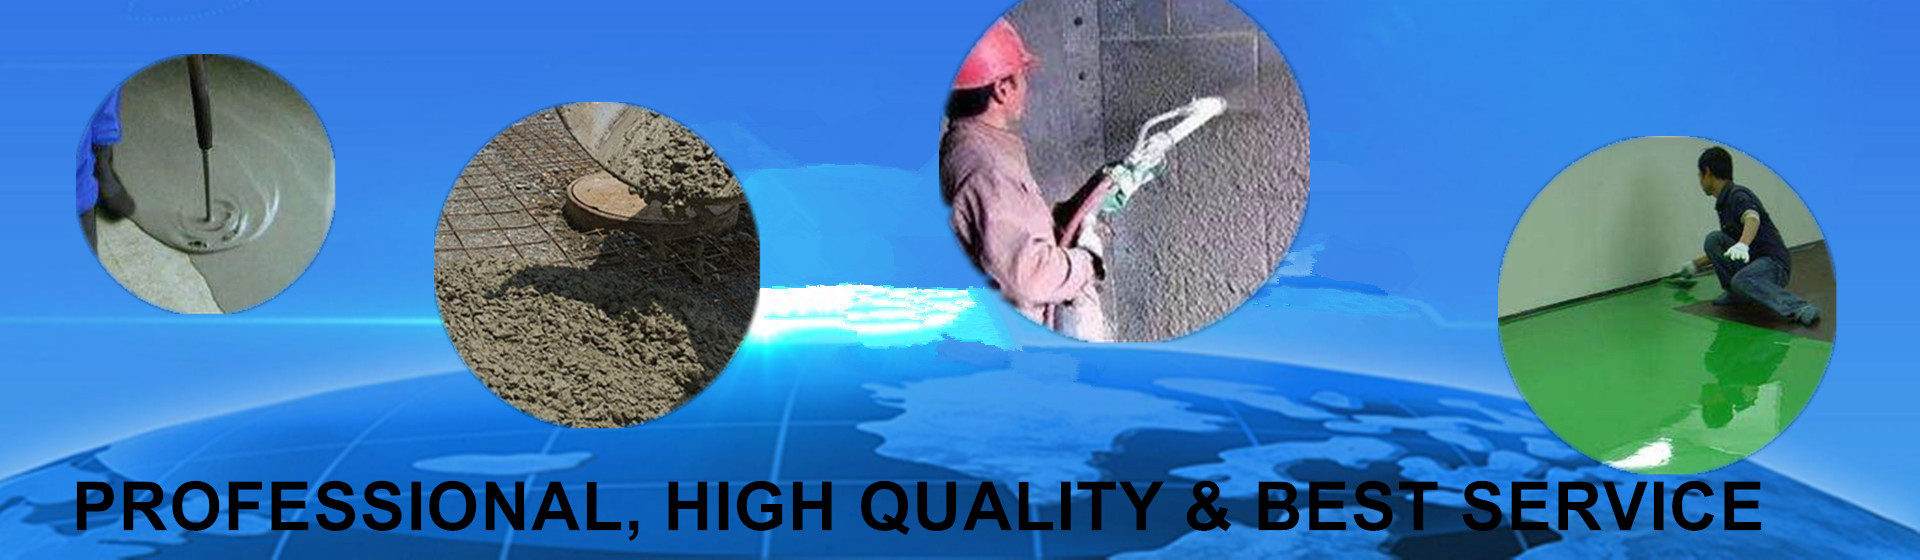 professional suppliers of concrete mortar additives